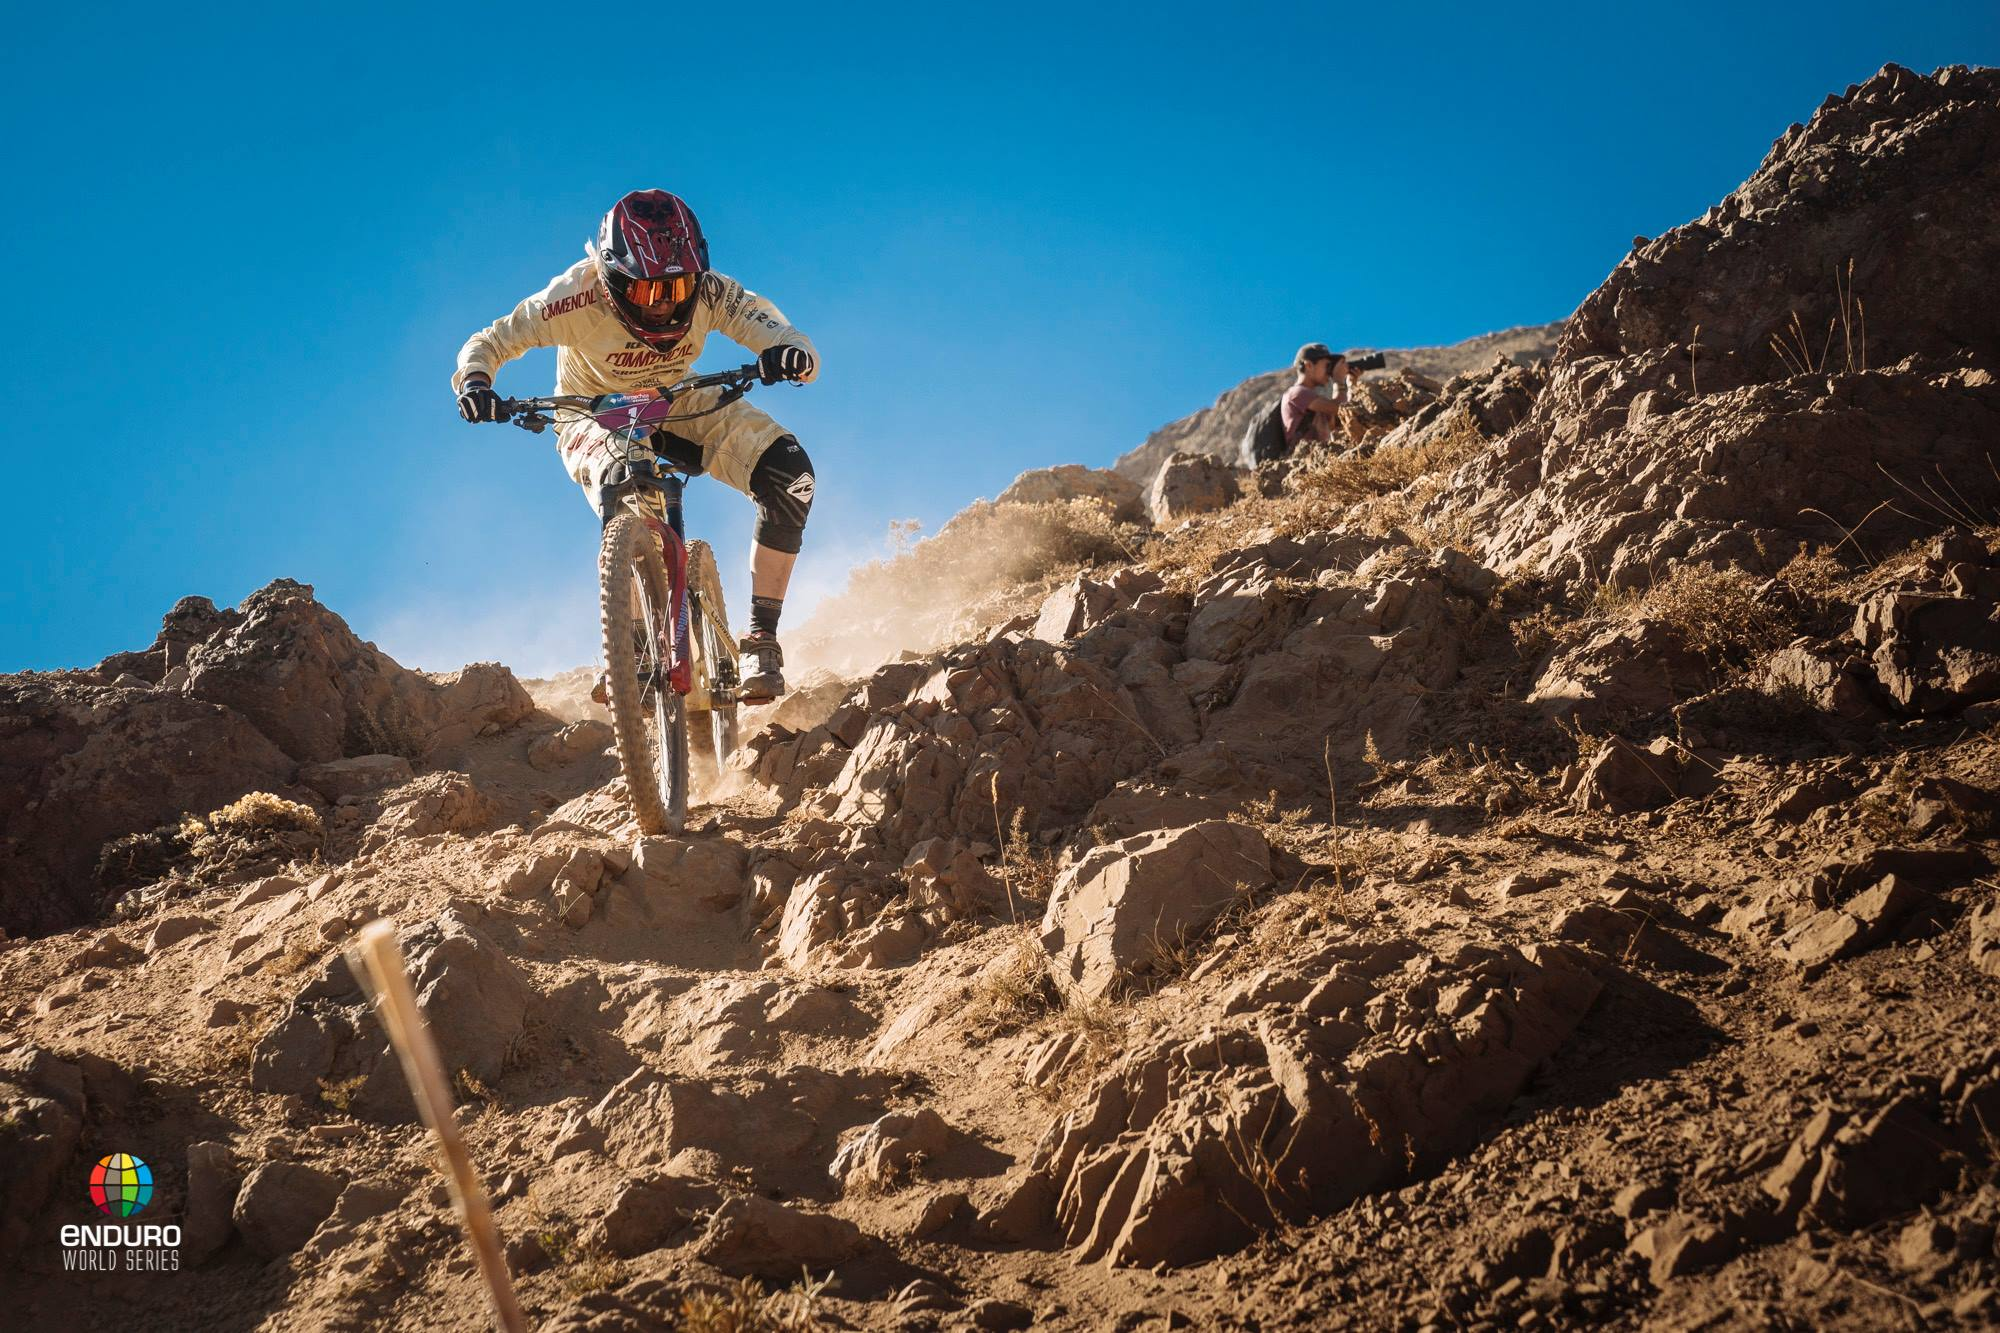 Calendario Gare Mtb 2020.Video Ecco Il Calendario Dell Enduro World Series 2020